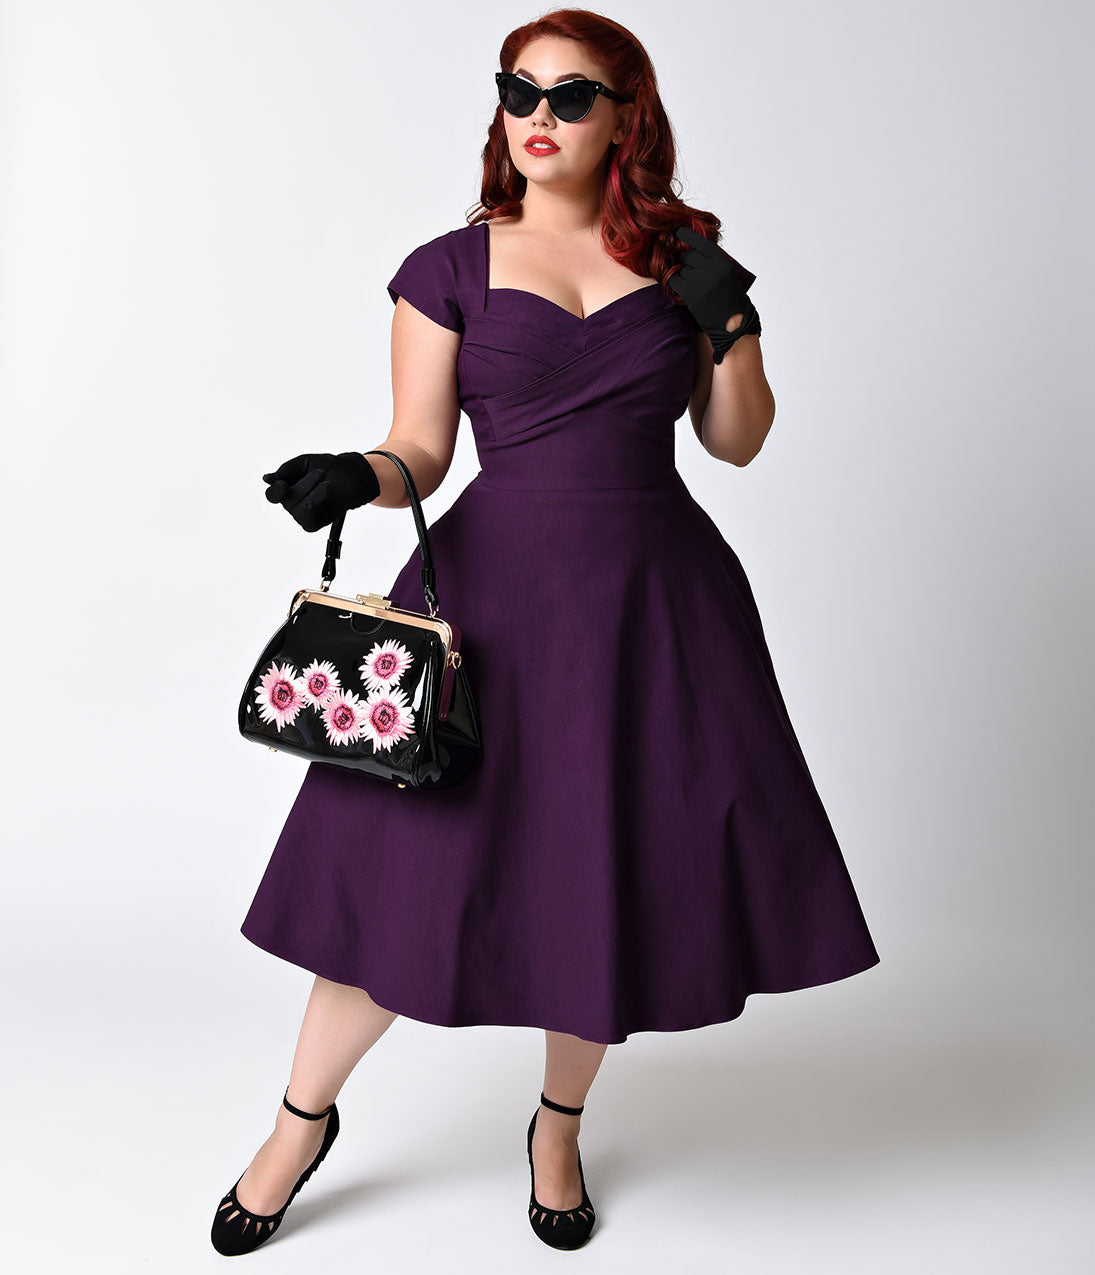 1950s Dresses, 50s Dresses | 1950s Style Dresses Stop Staring Plus Size Mad Style Eggplant Cap Sleeve Swing Dress $172.00 AT vintagedancer.com